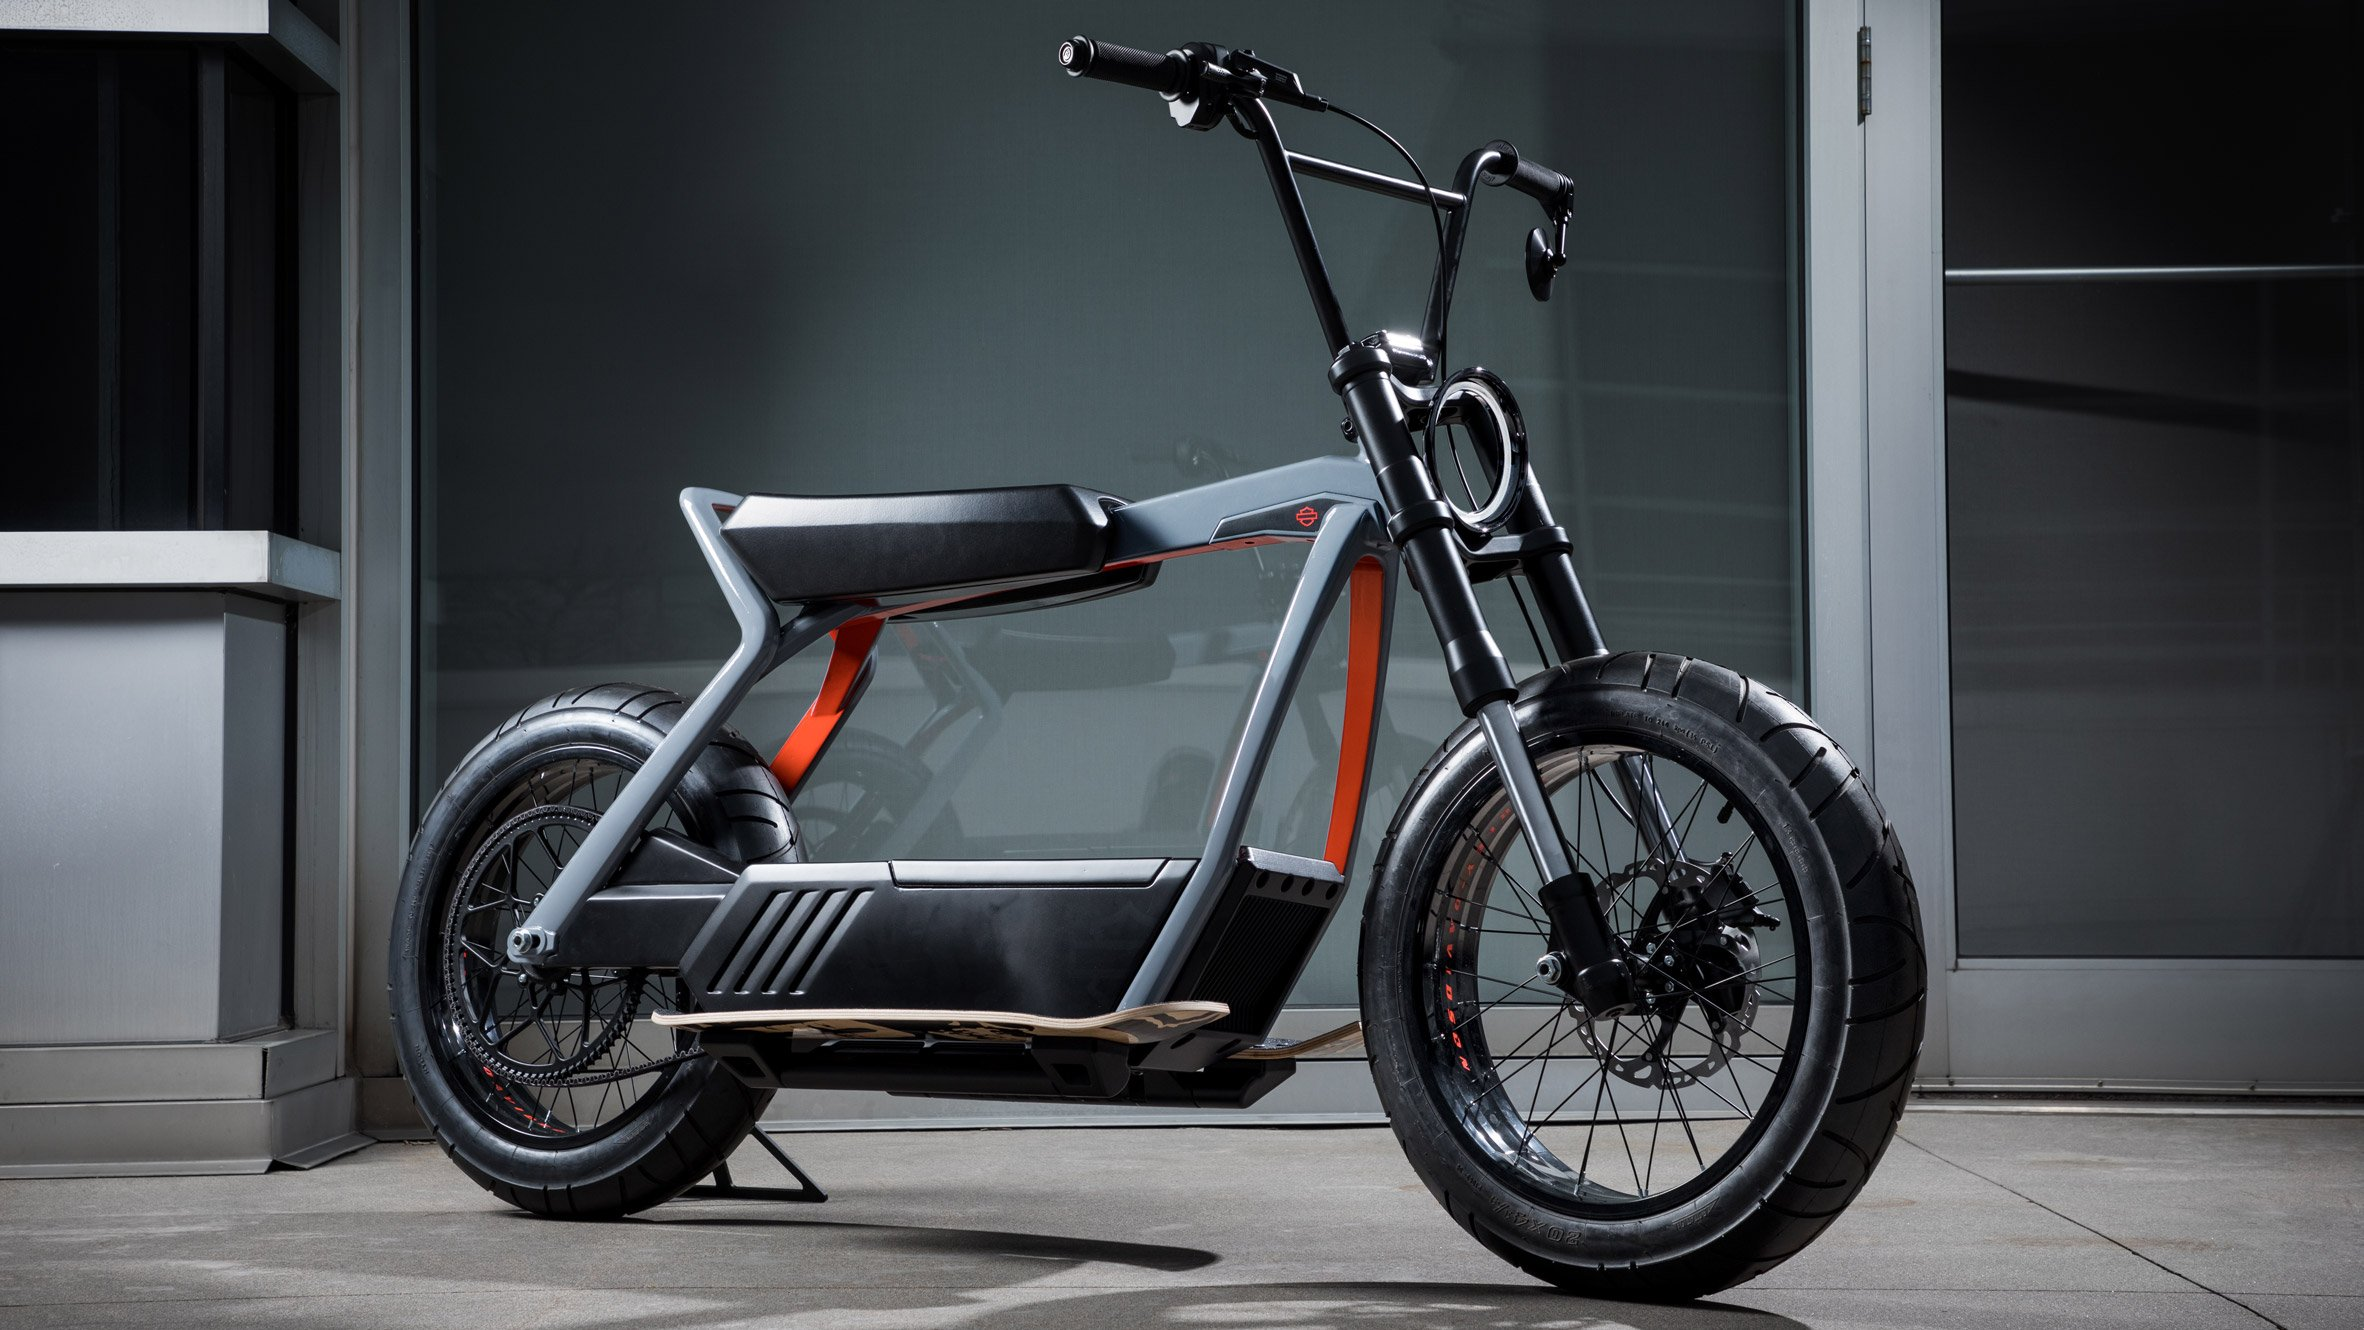 Harley-Davidson's latest electric bikes are designed for